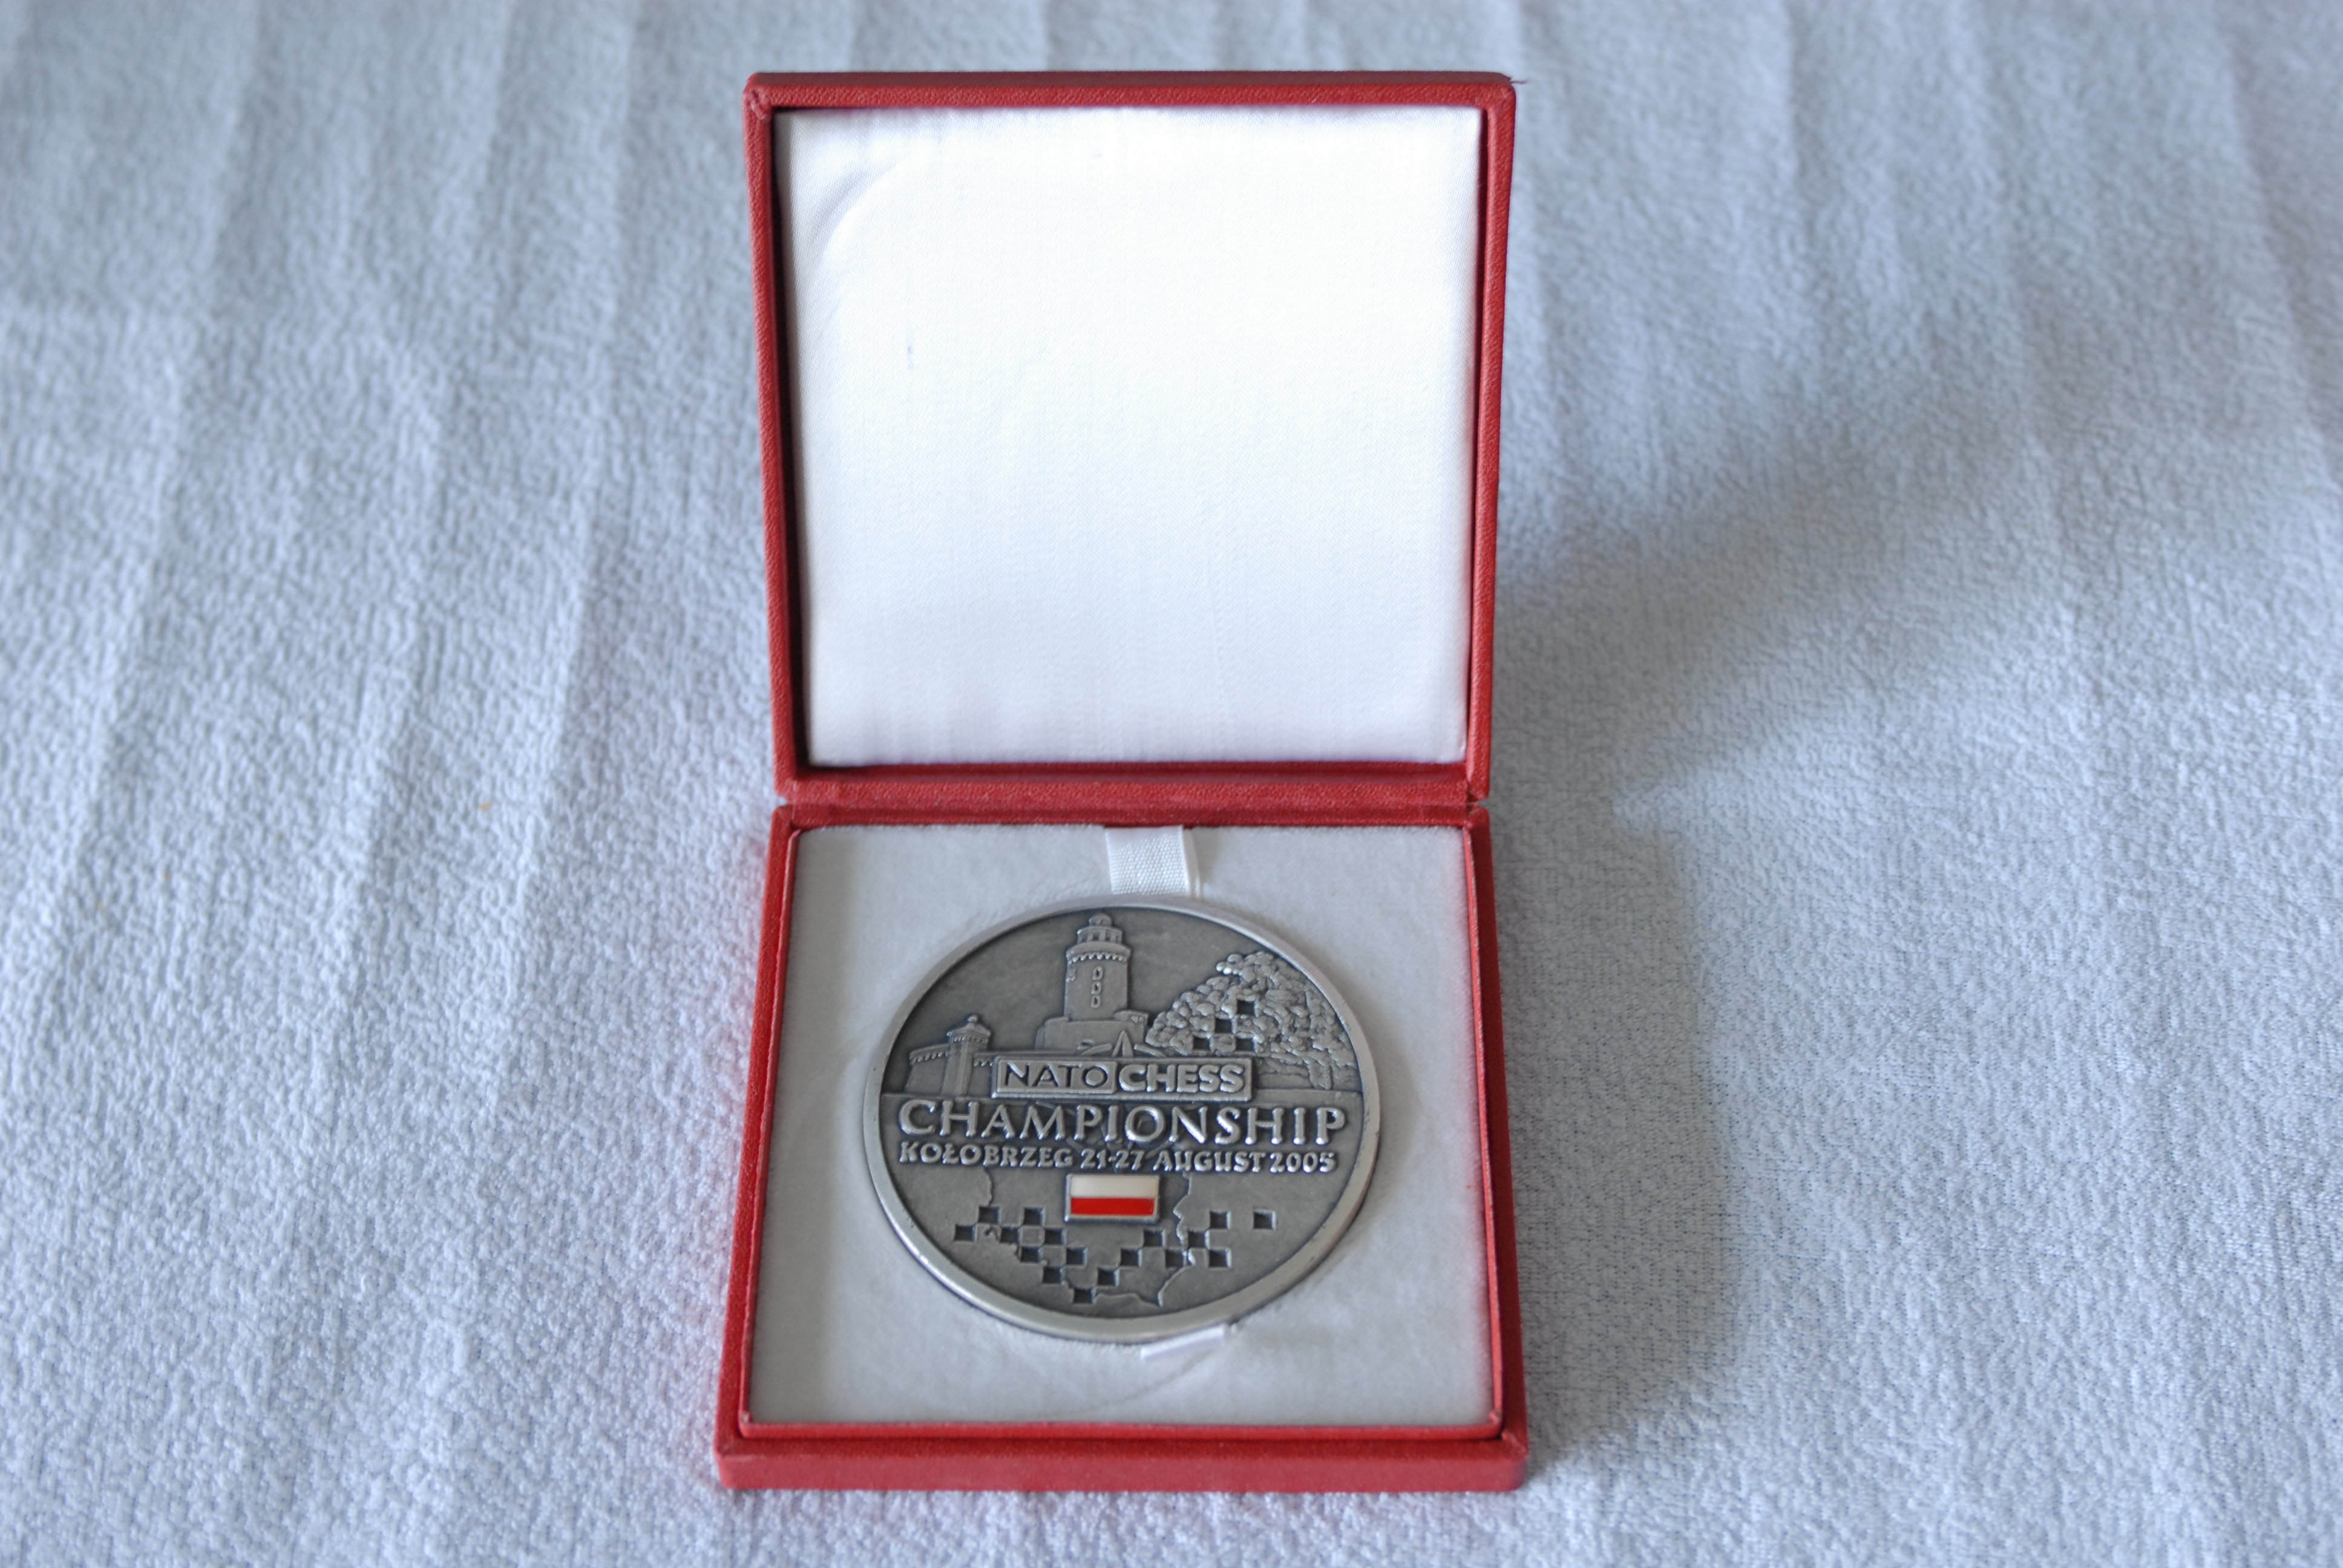 NATO Chess 2005 Participant Medal - front